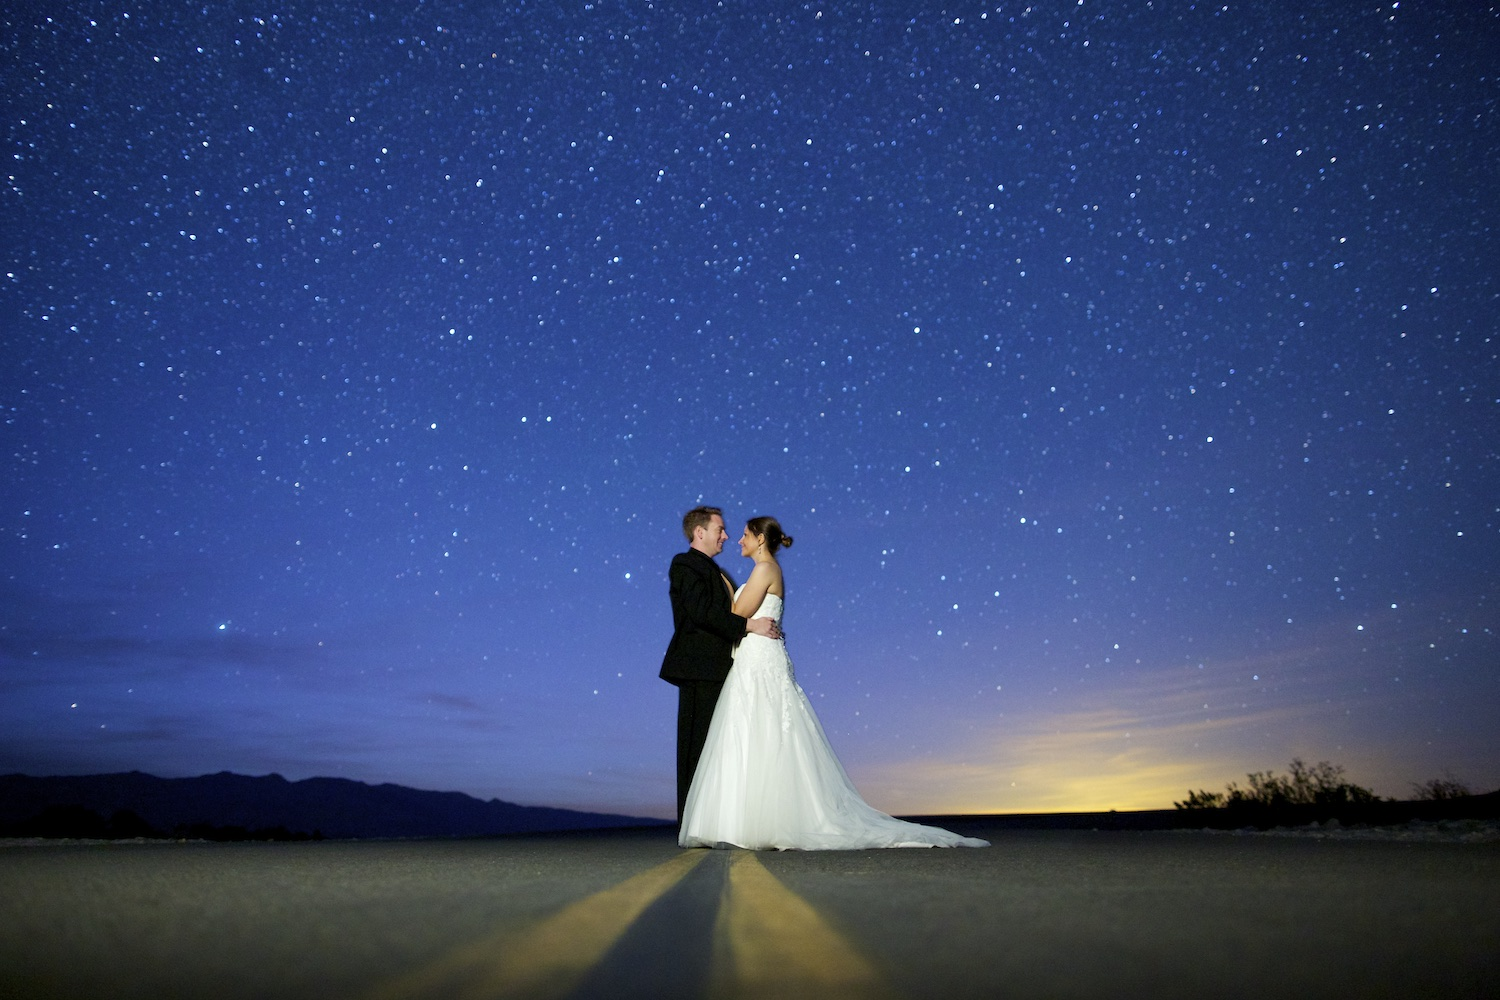 Death Valley Astro Wedding Photography Session